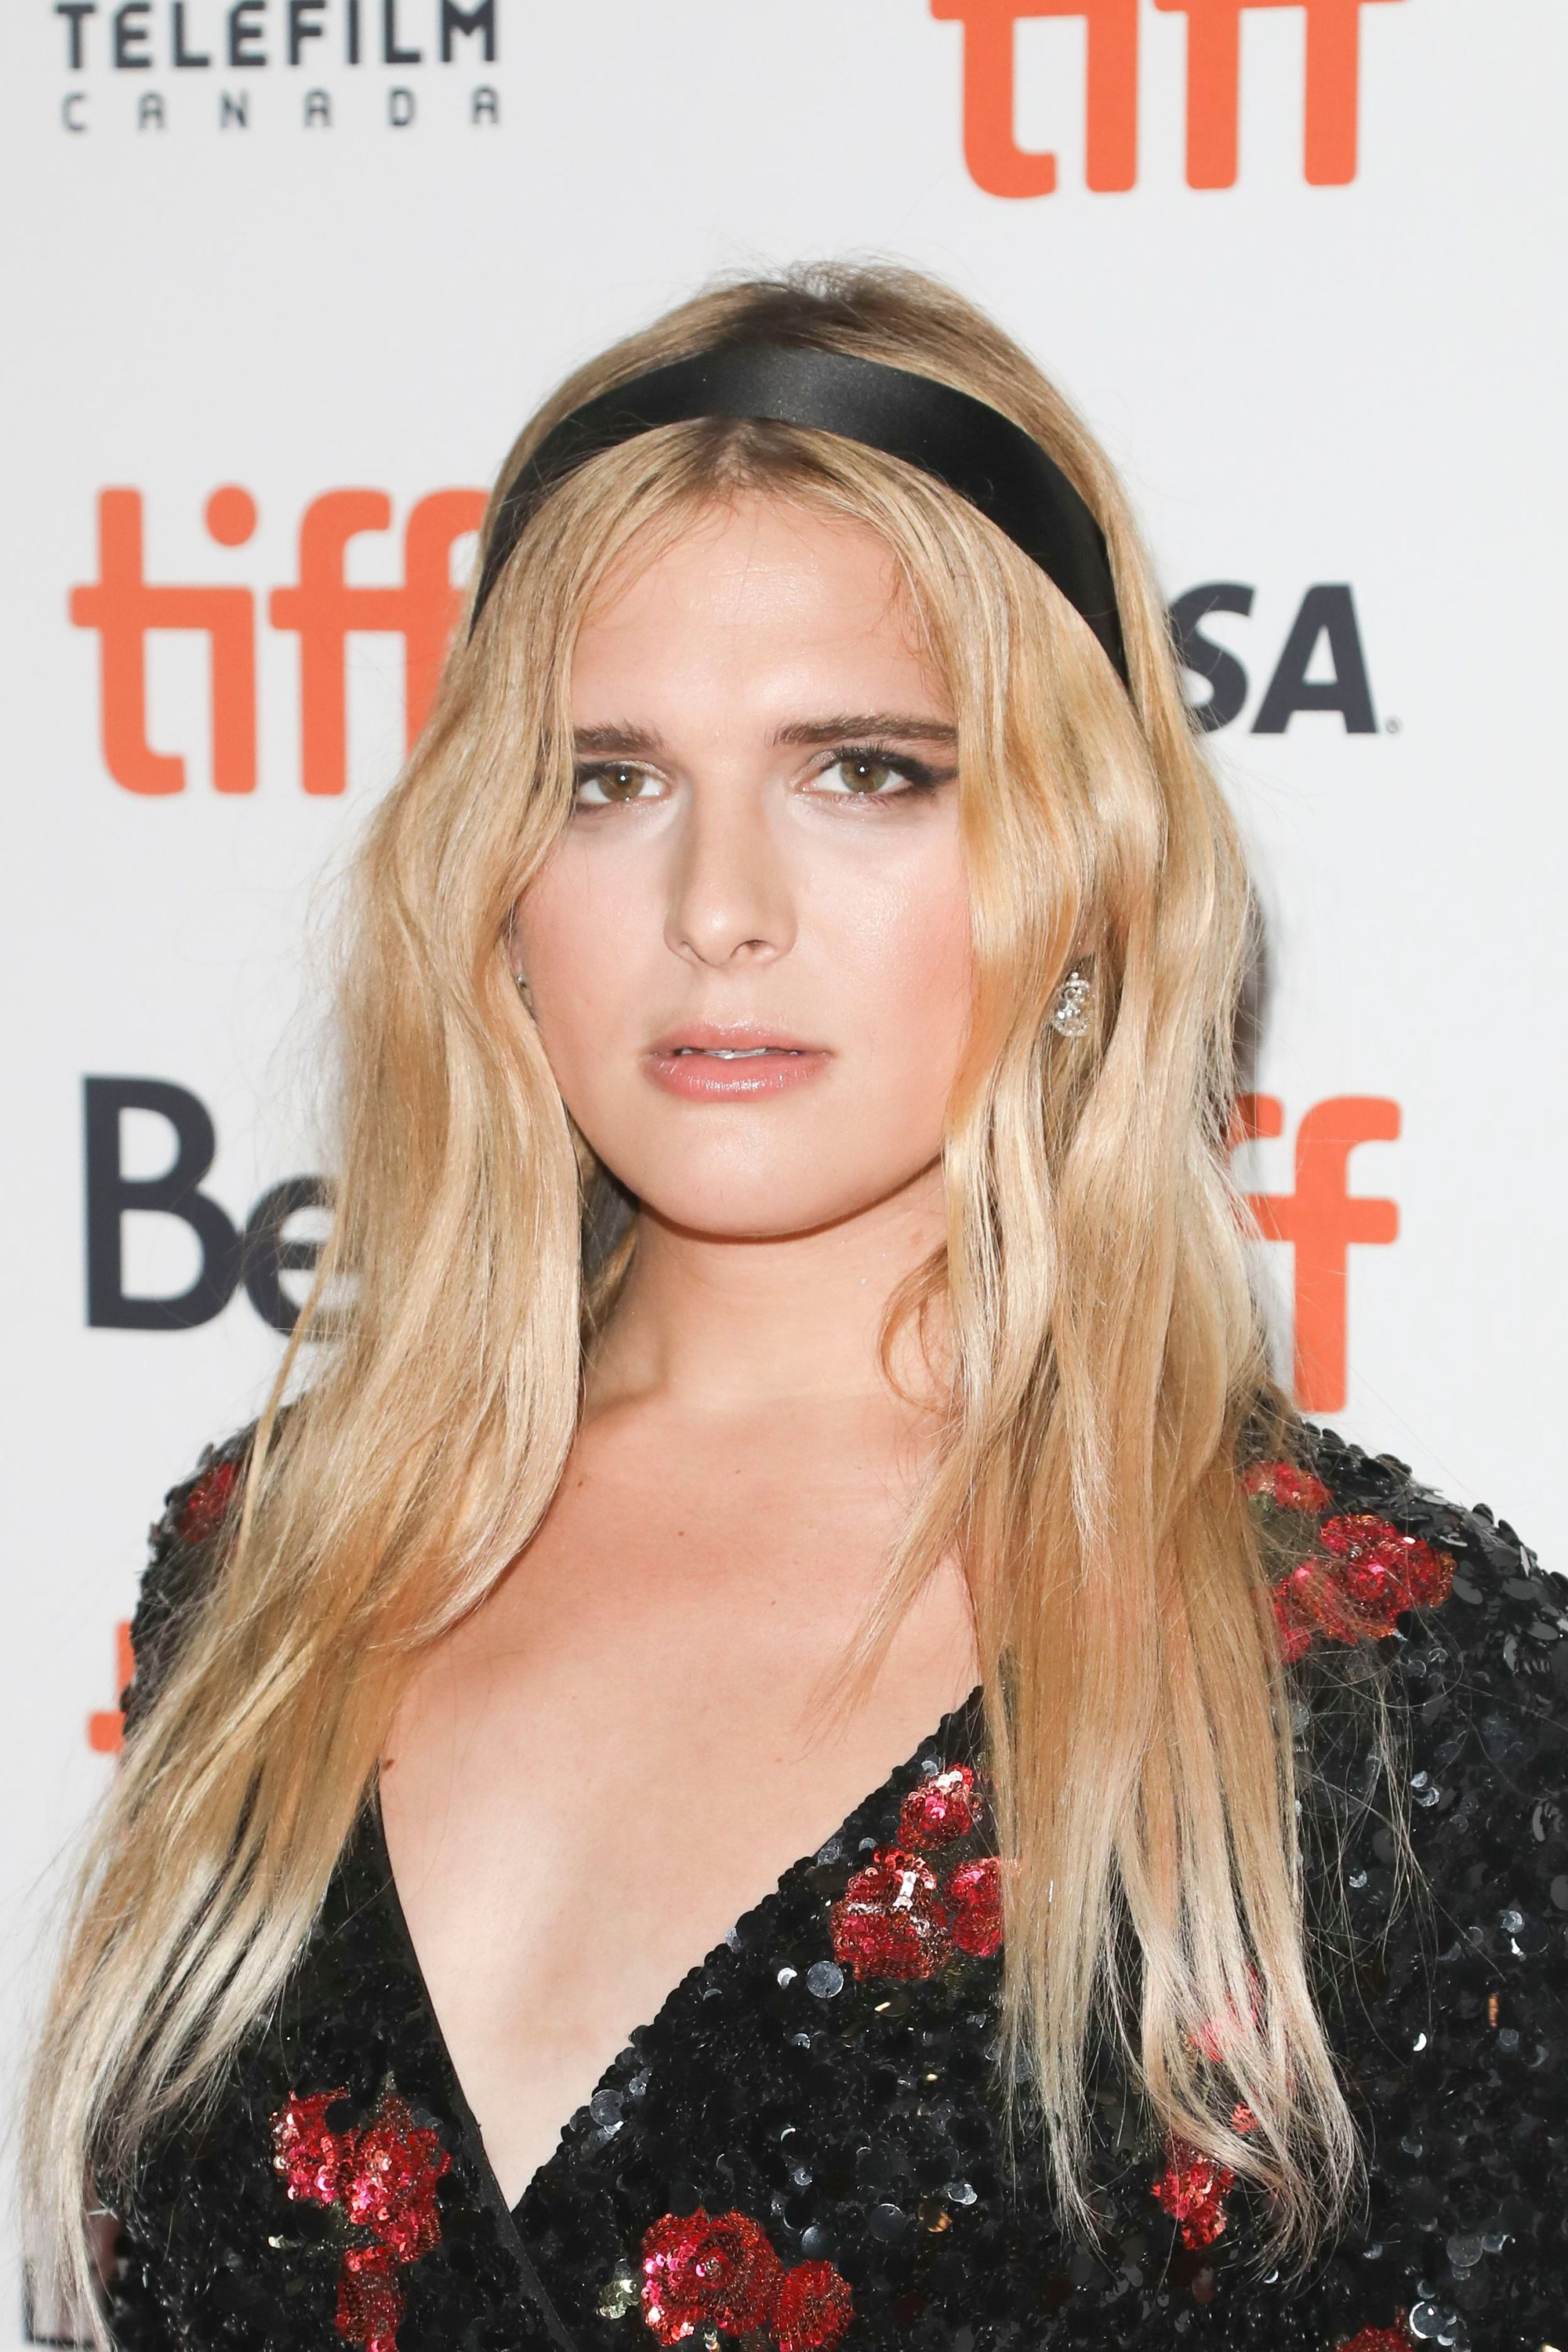 Headband hairstyles: Hari Nef on the red carpet with long blonde loose waves with preppy headband